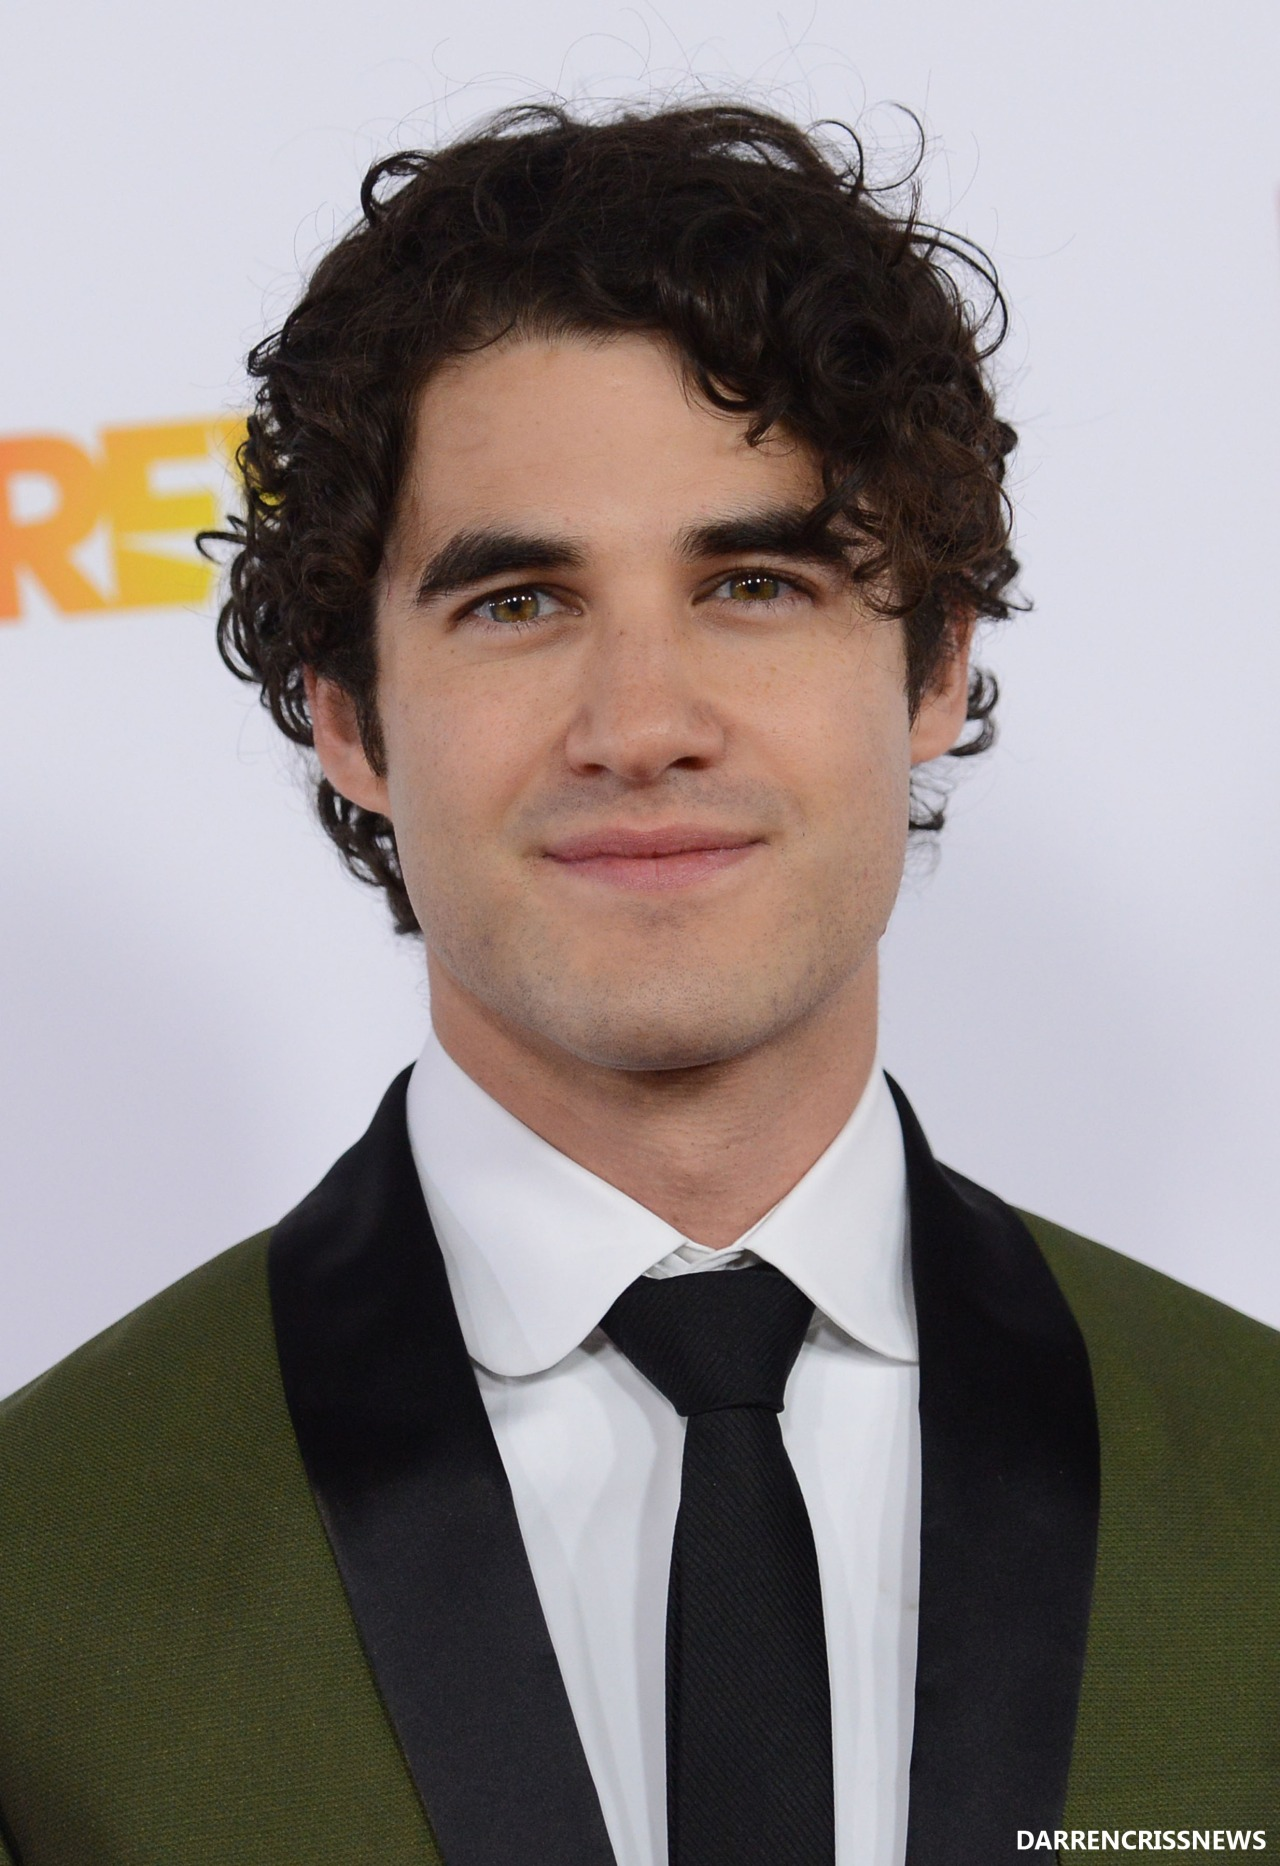 Gleek - Darren's Chartitable Work for 2015 Tumblr_nyz9ddPr8L1r4gxc3o7_1280